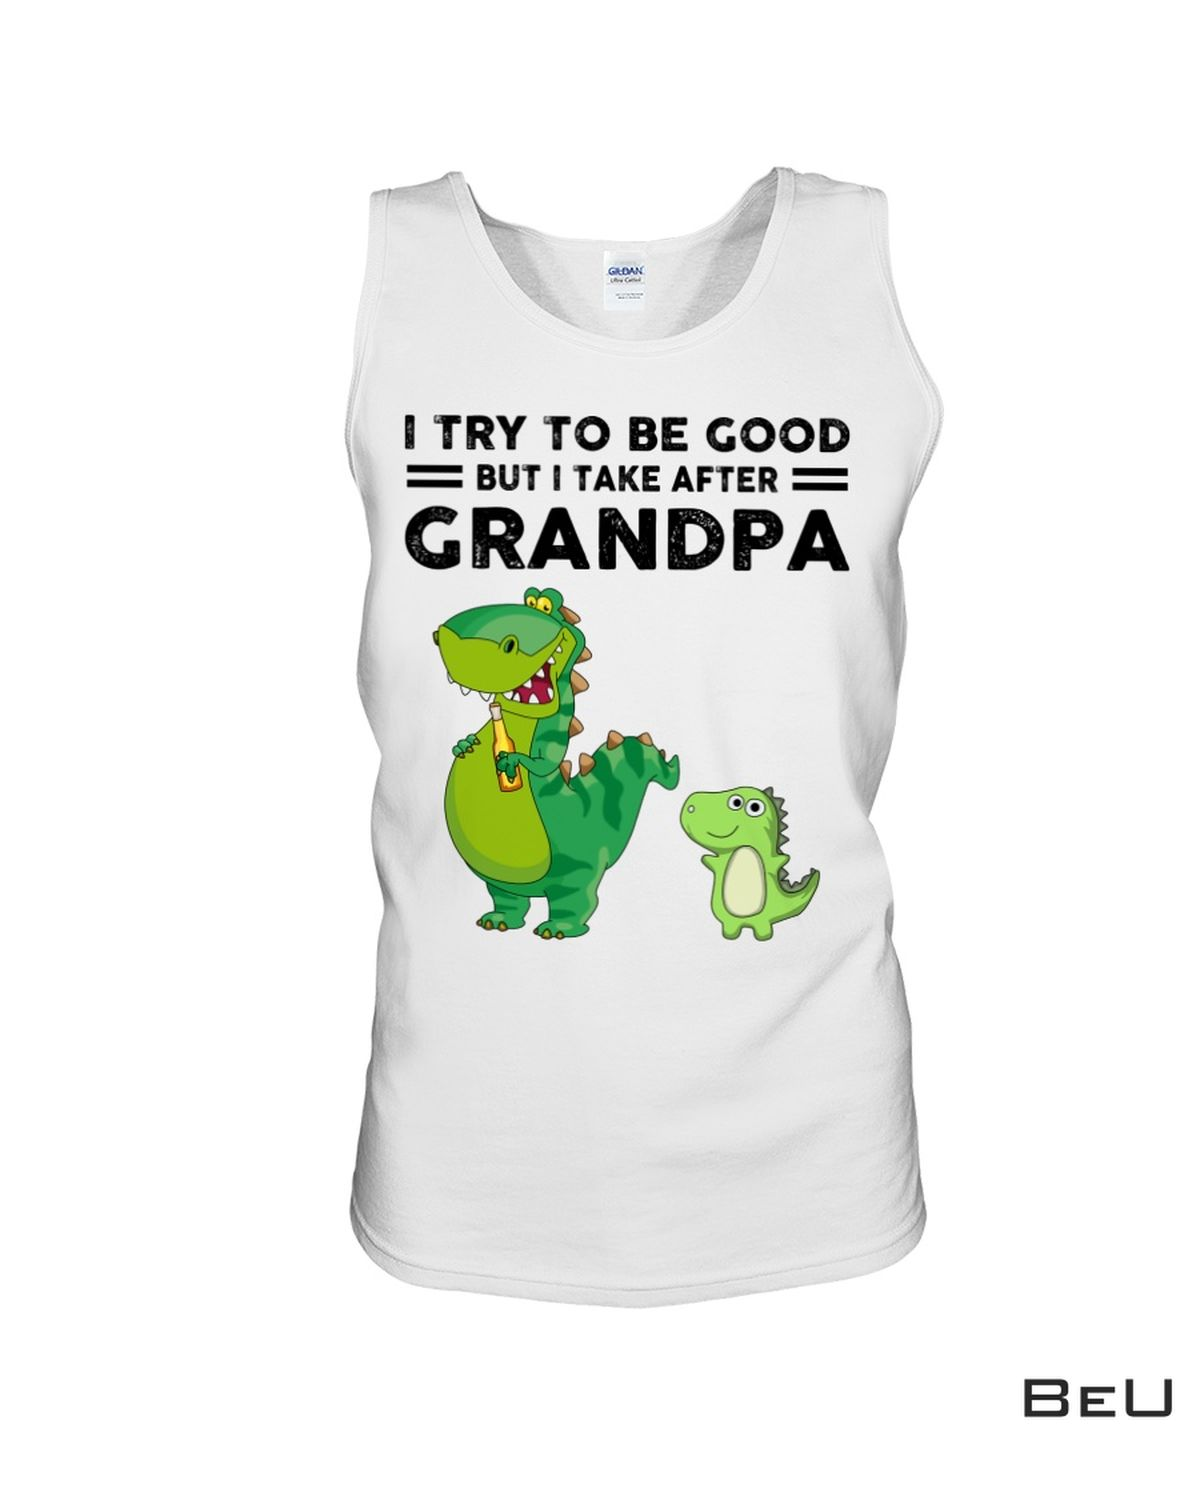 I Try To be Good But I Take After Grandpa Shirt c